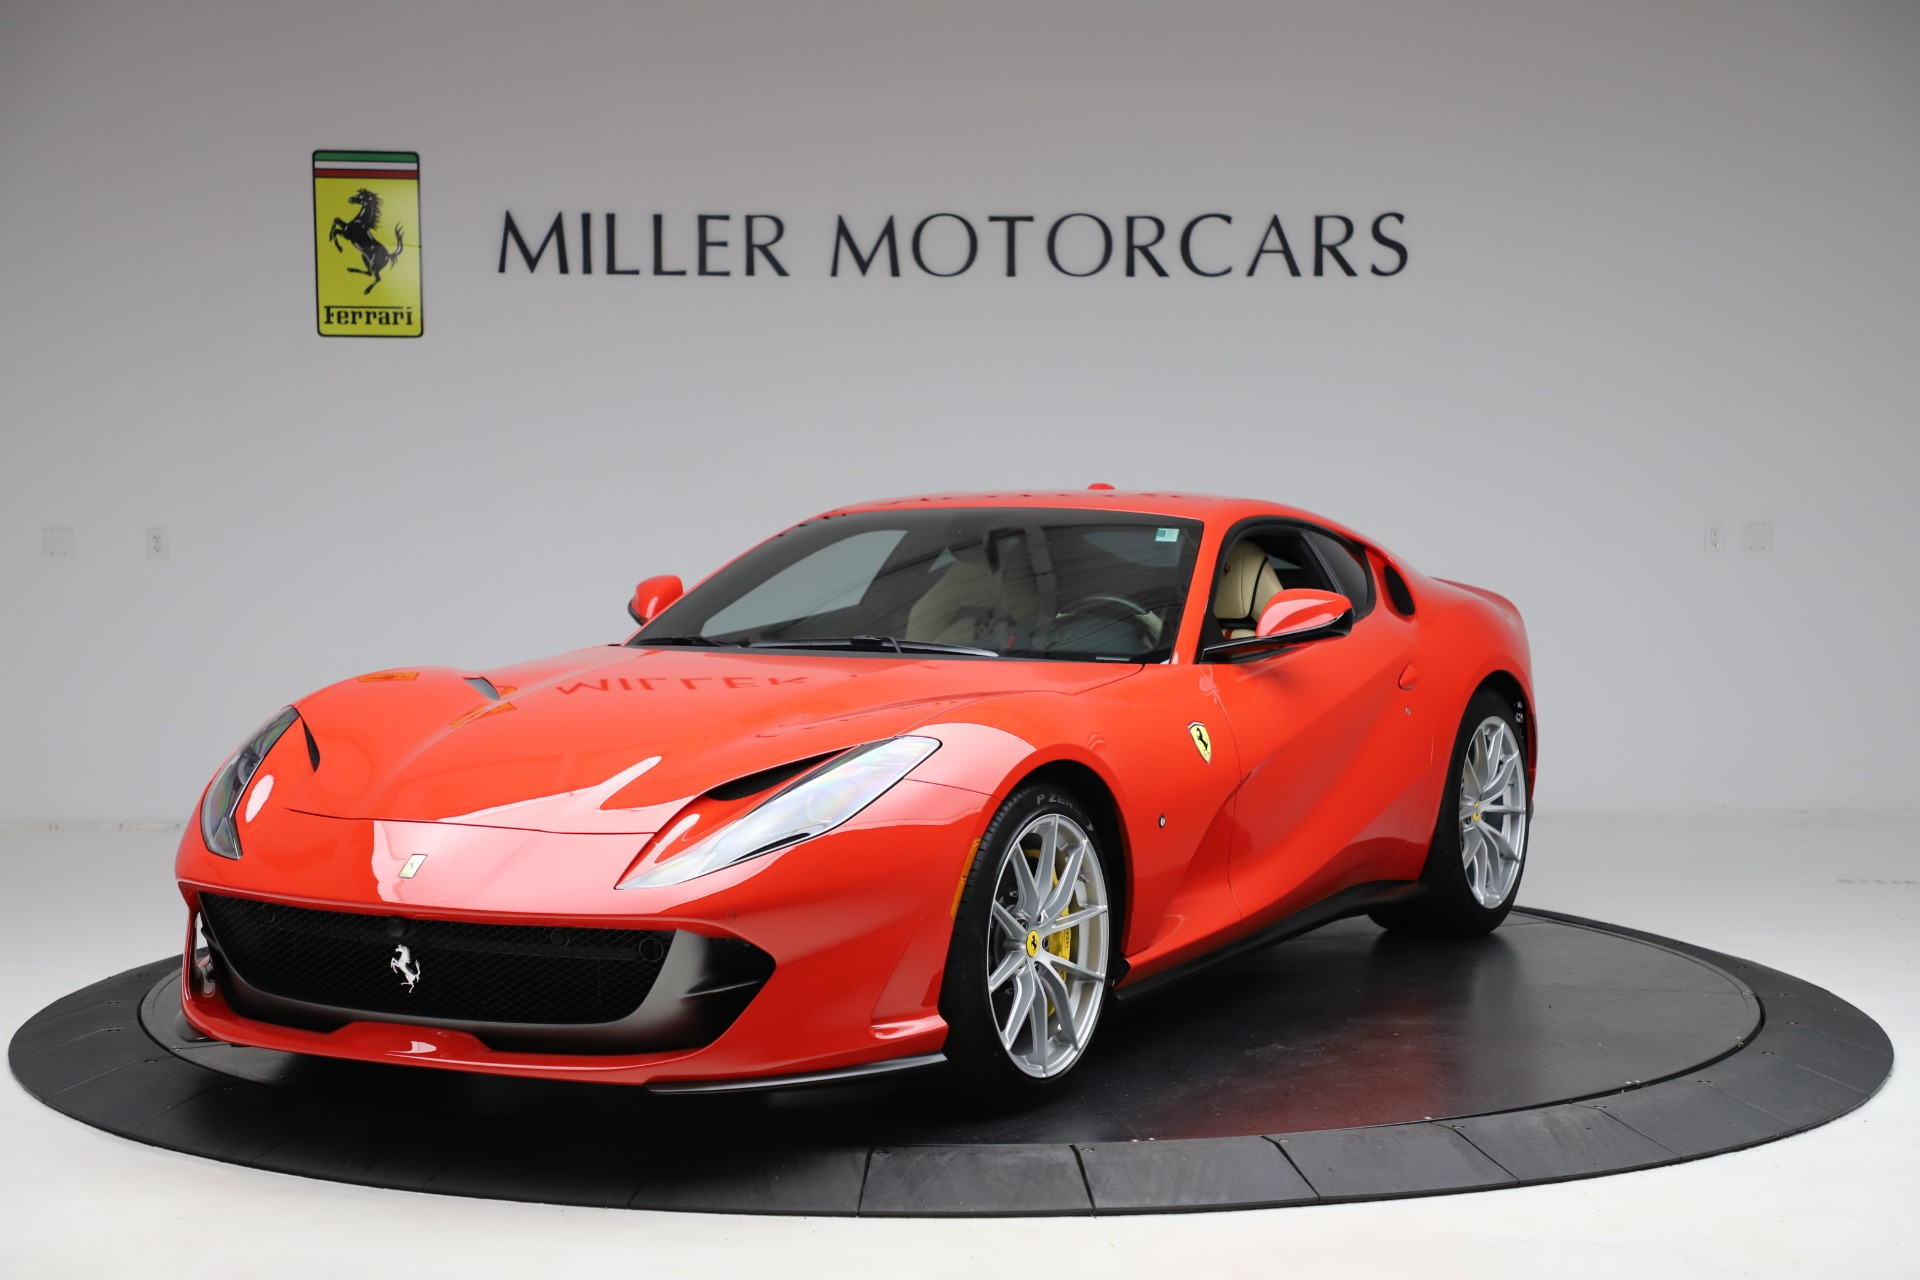 Pre Owned 2019 Ferrari 812 Superfast For Sale Special Pricing Mclaren Greenwich Stock 4668